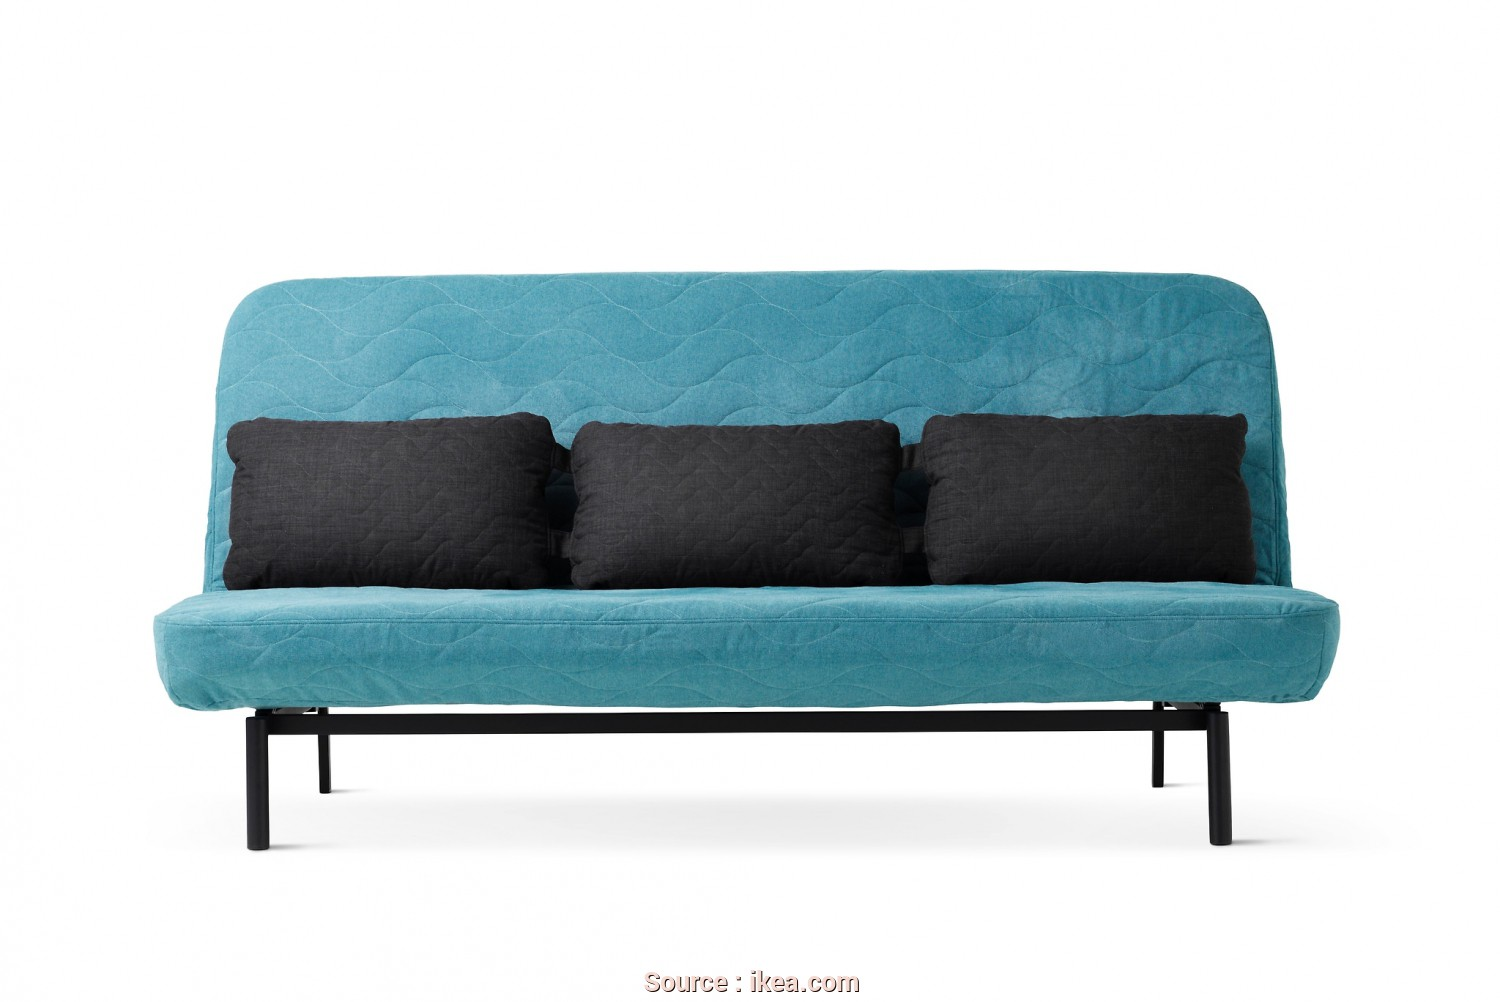 Asarum Ikea Dimensions, Eccezionale Sofa By, And, By Night,, NYHAMN Sofa, Comes In Blue Or